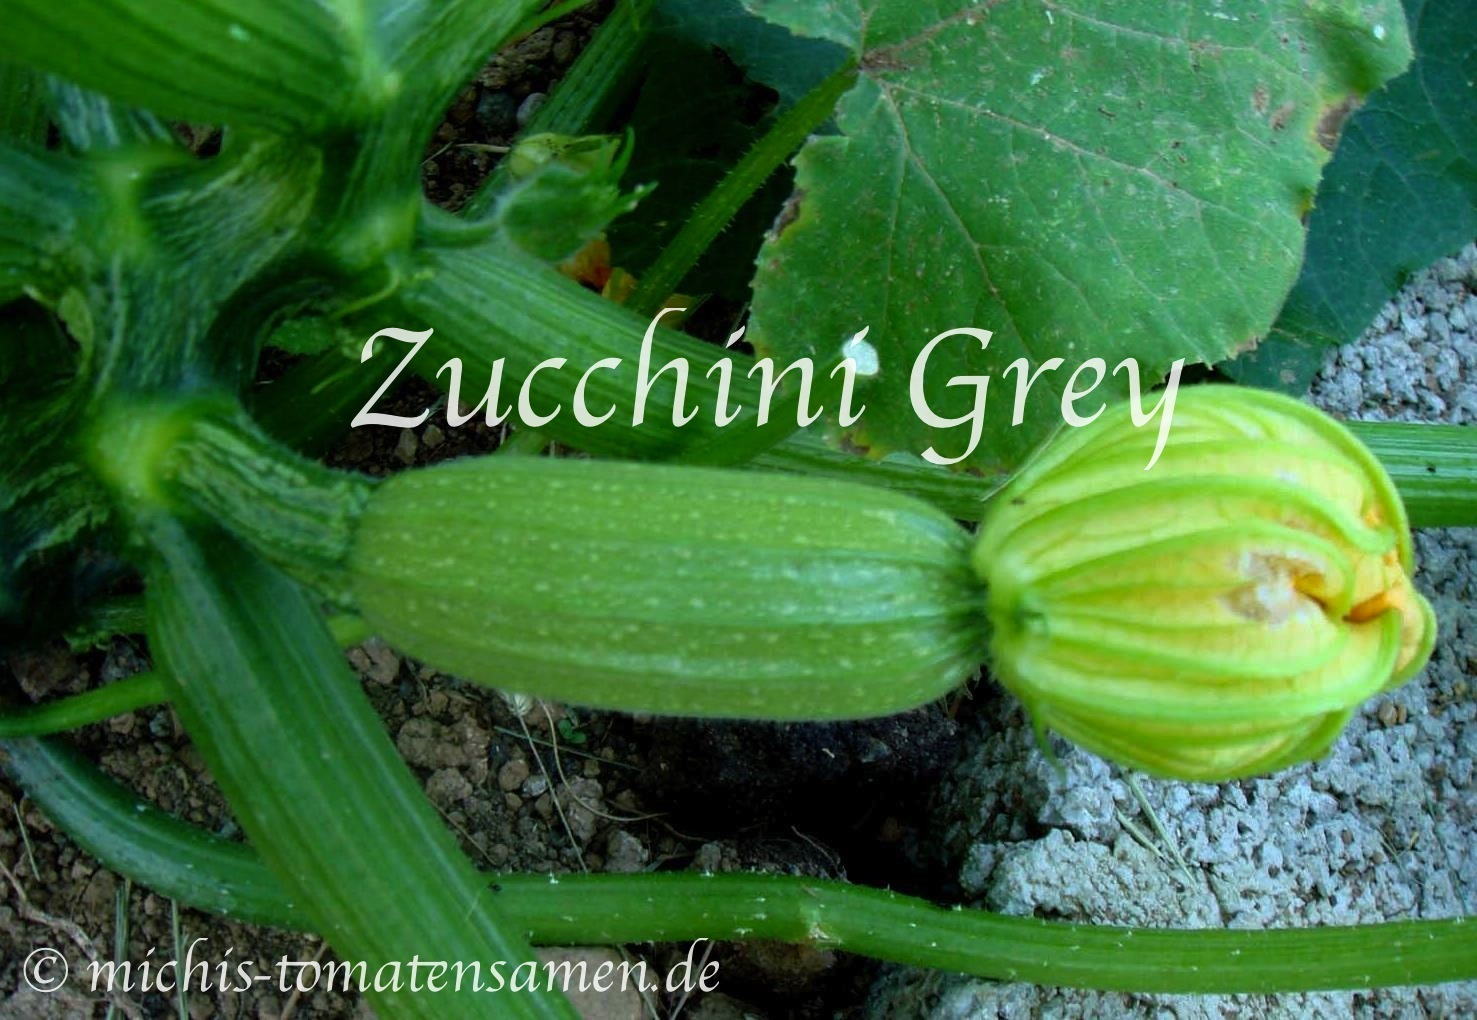 zucchini gray gr ne zucchini ertragreich aromatisch 5. Black Bedroom Furniture Sets. Home Design Ideas